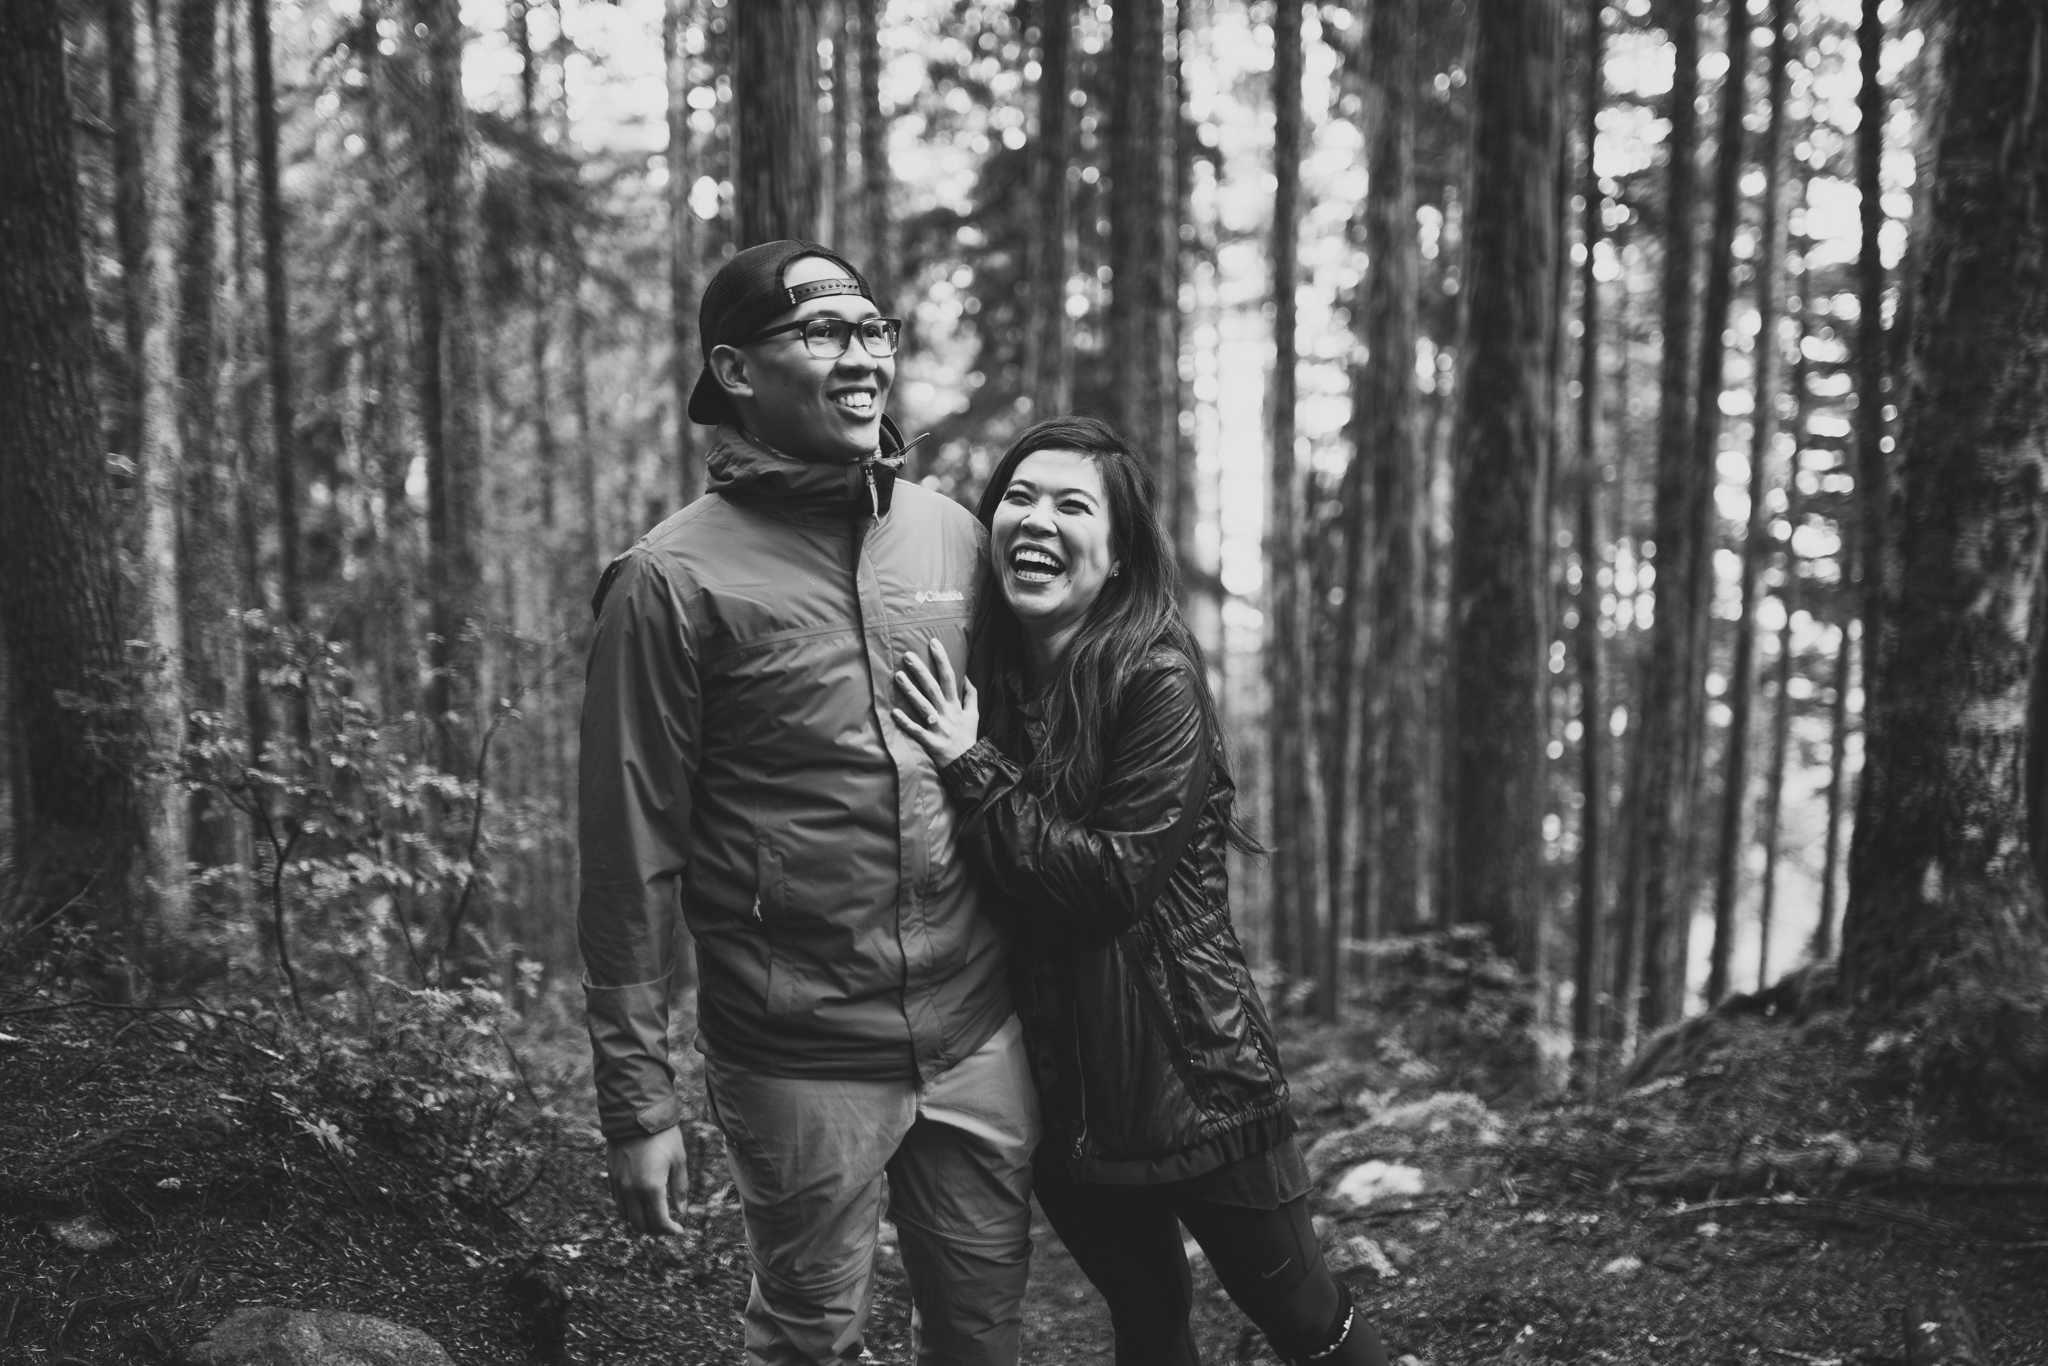 ©Isaiah-&-Taylor-Photography---Hidden-Lake-Cascade-Mountains-Engagement,-Washington-019.jpg